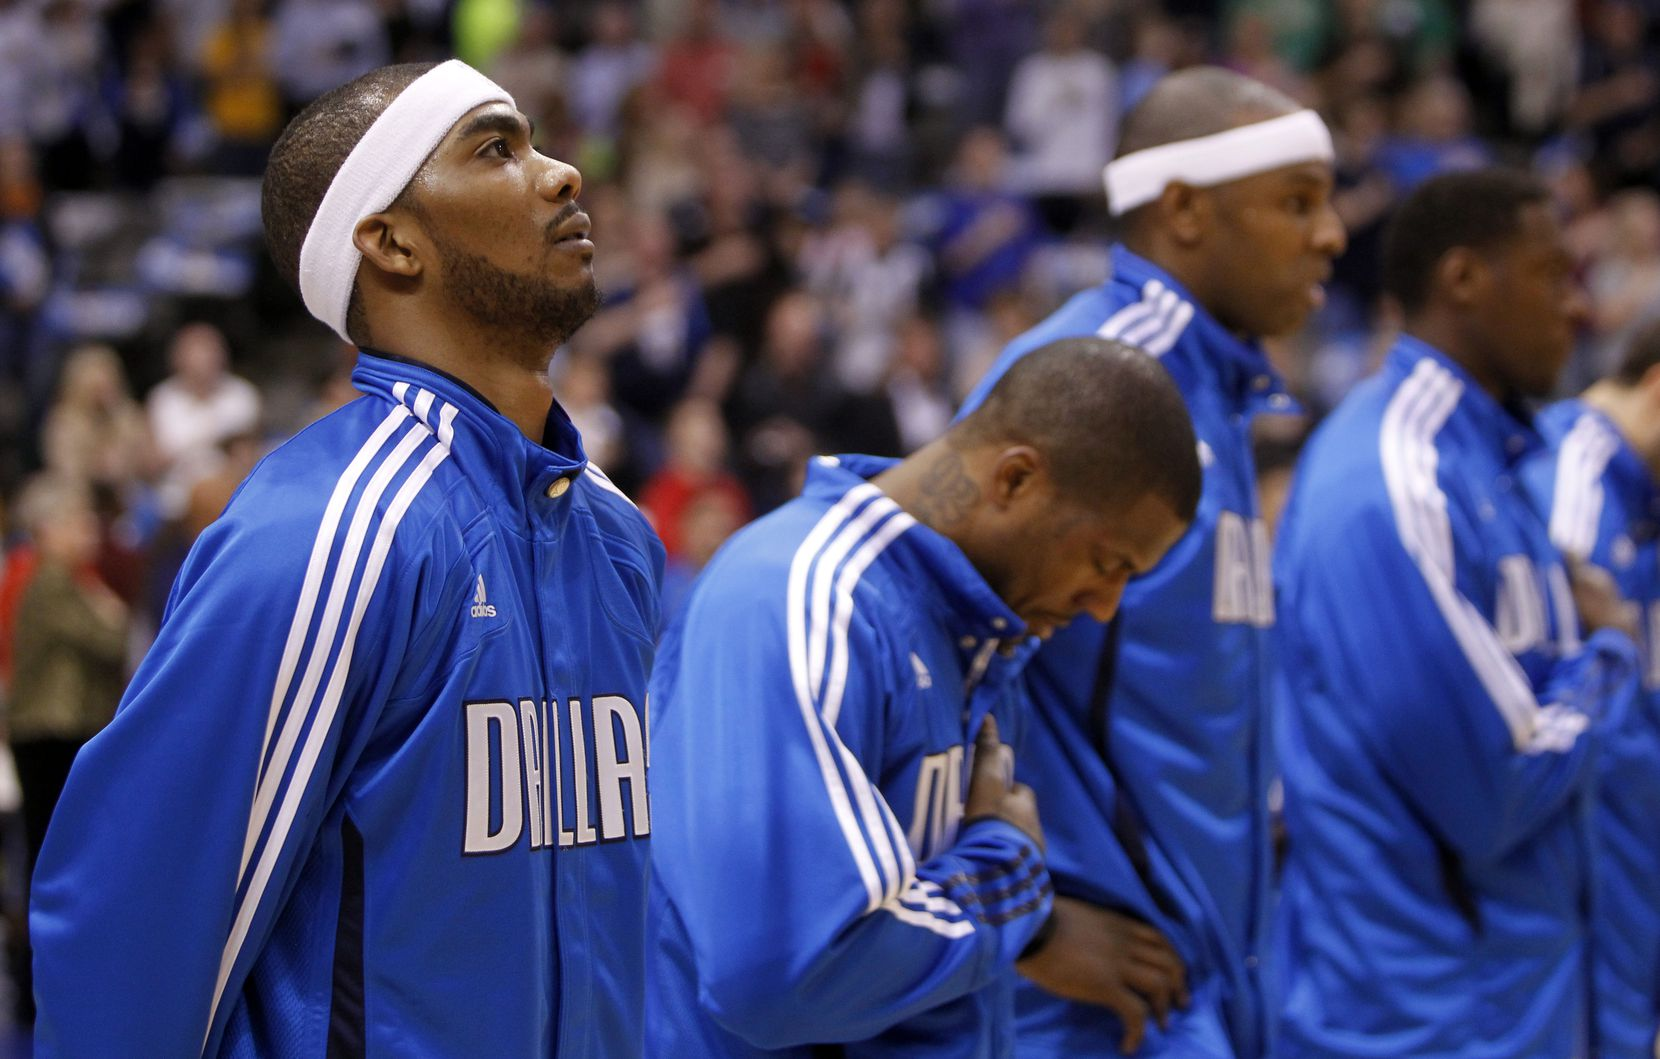 Mavericks shooting guard Corey Brewer (13) during the national anthem before an NBA game between the Dallas Mavericks and the Indiana Pacers at American Airlines Center in Dallas, on March 4, 2011.